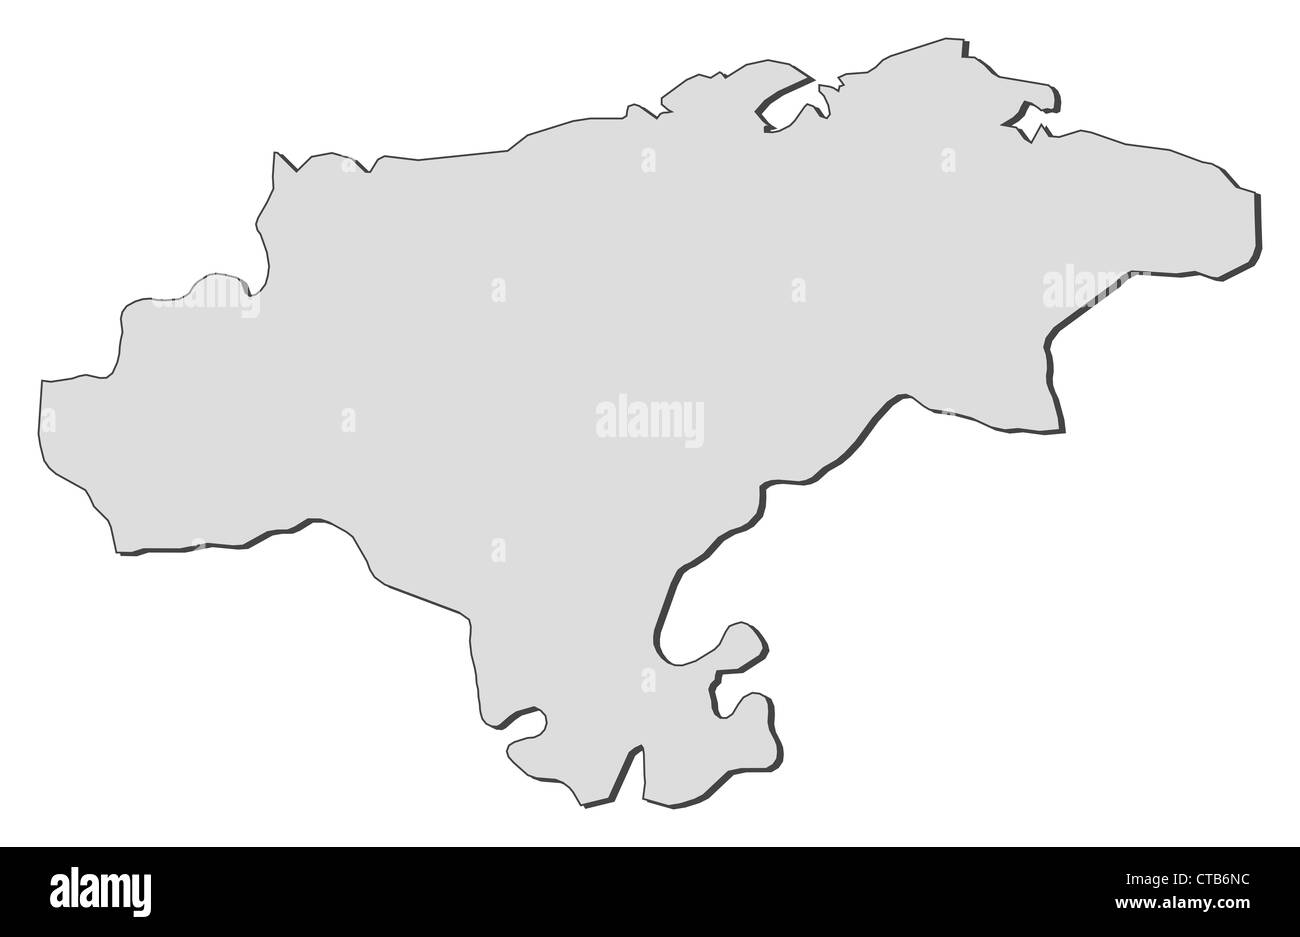 Map of Cantabria, a region of Spain. - Stock Image